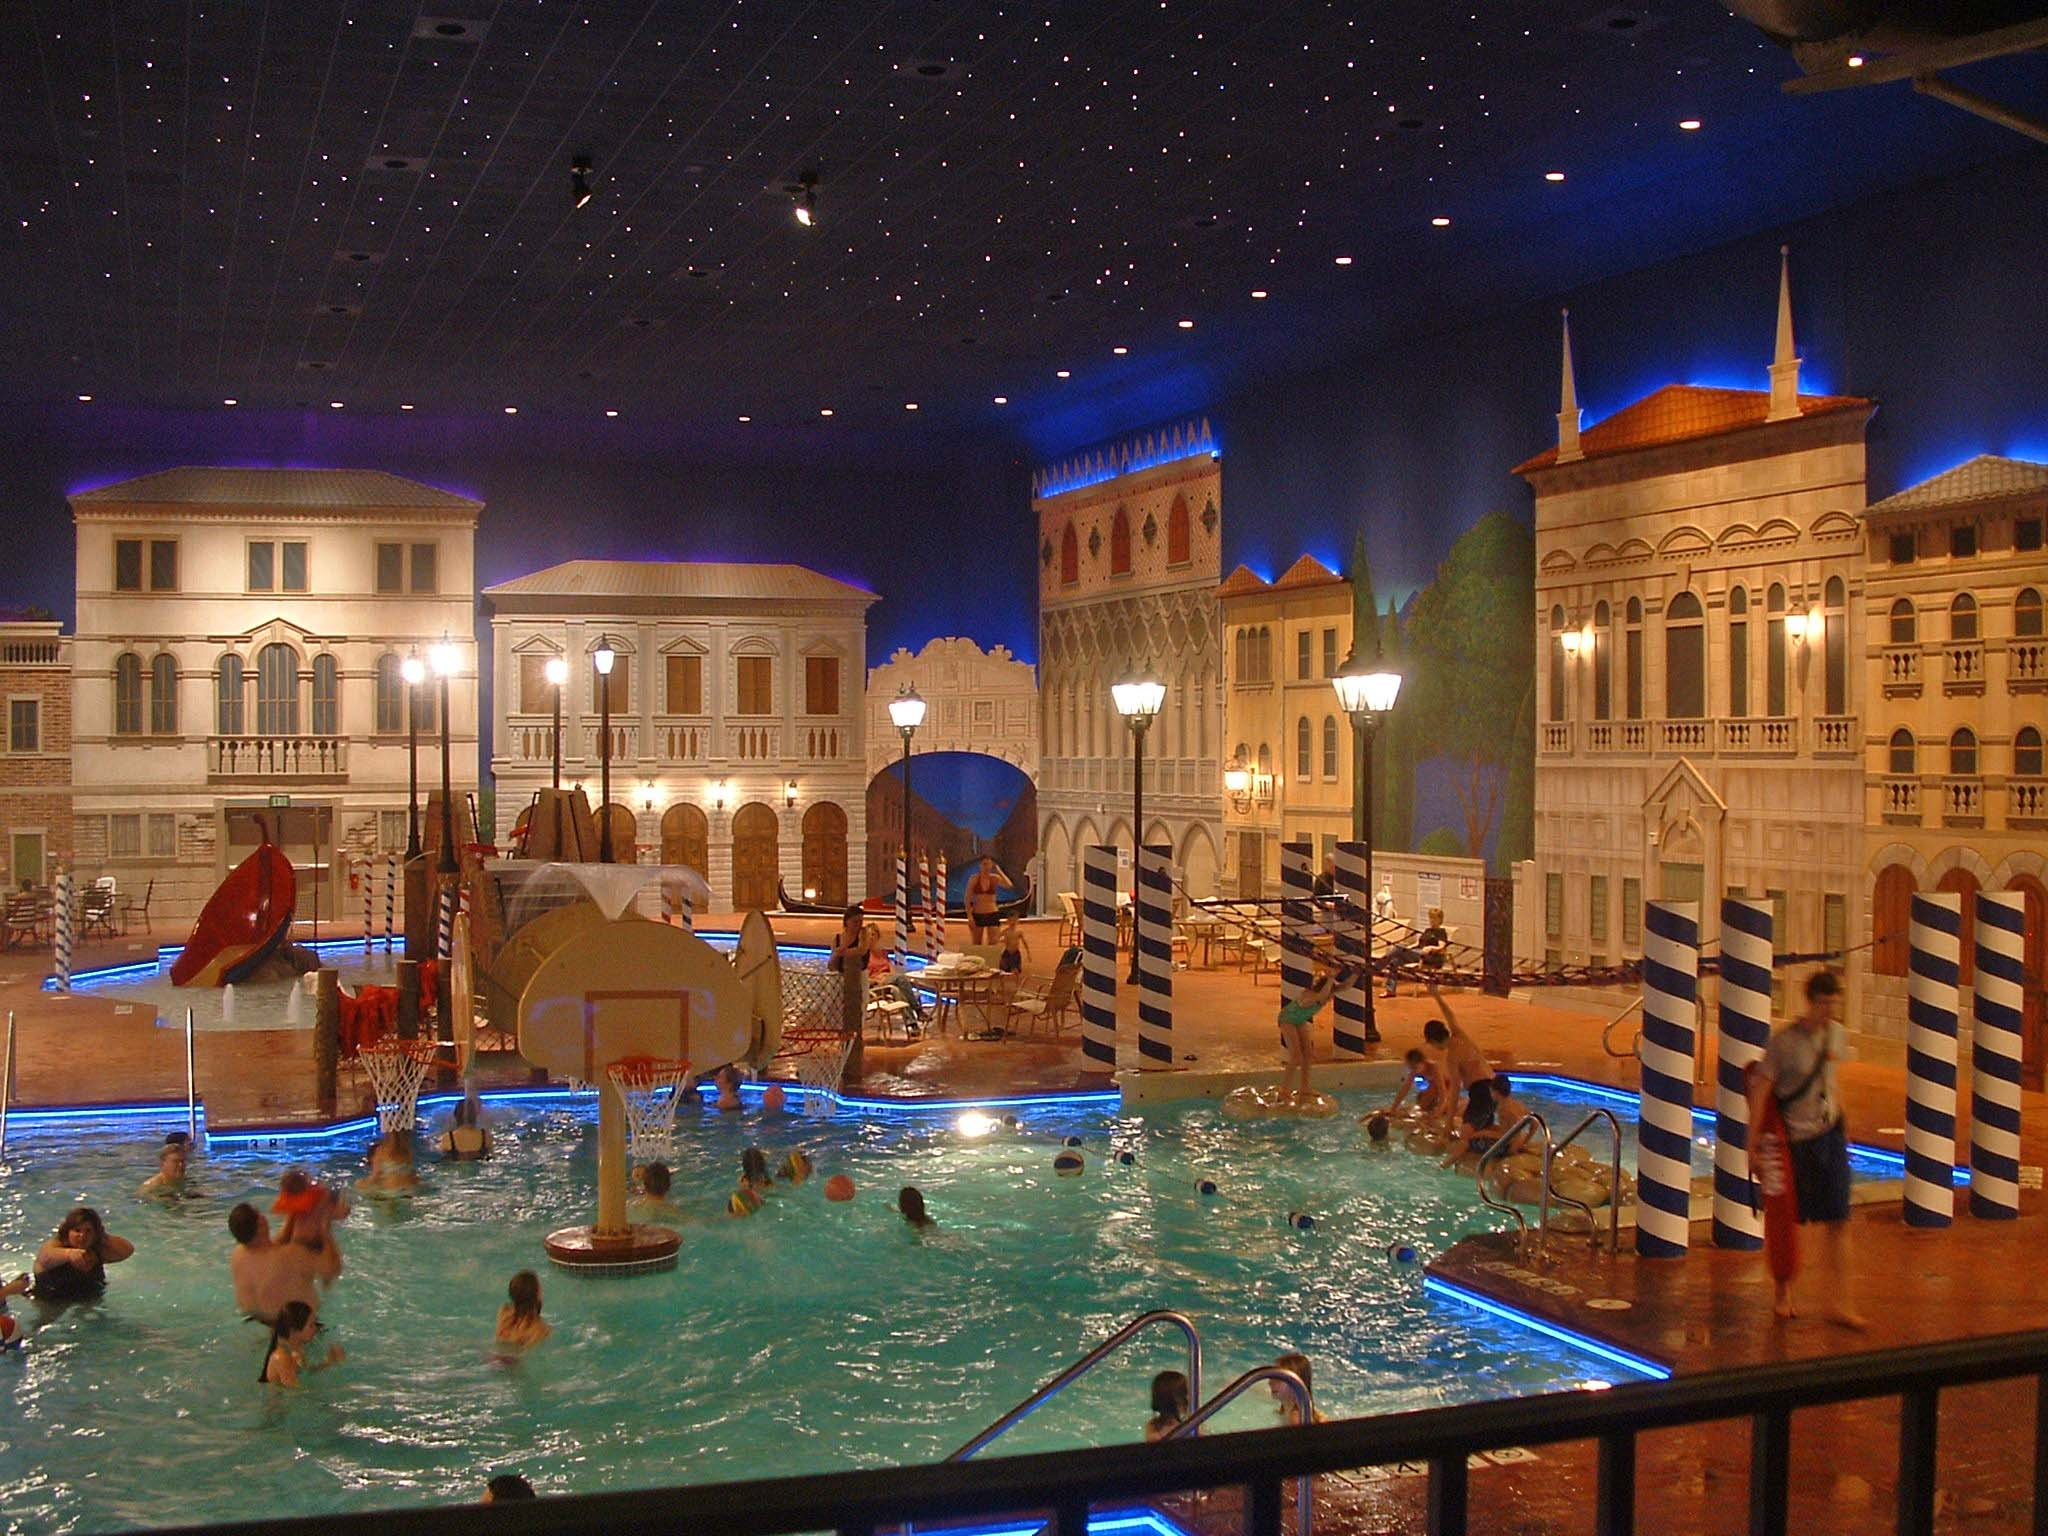 Inside pool area with a night time city theme at the Holiday Inn in Maple Grove, MN